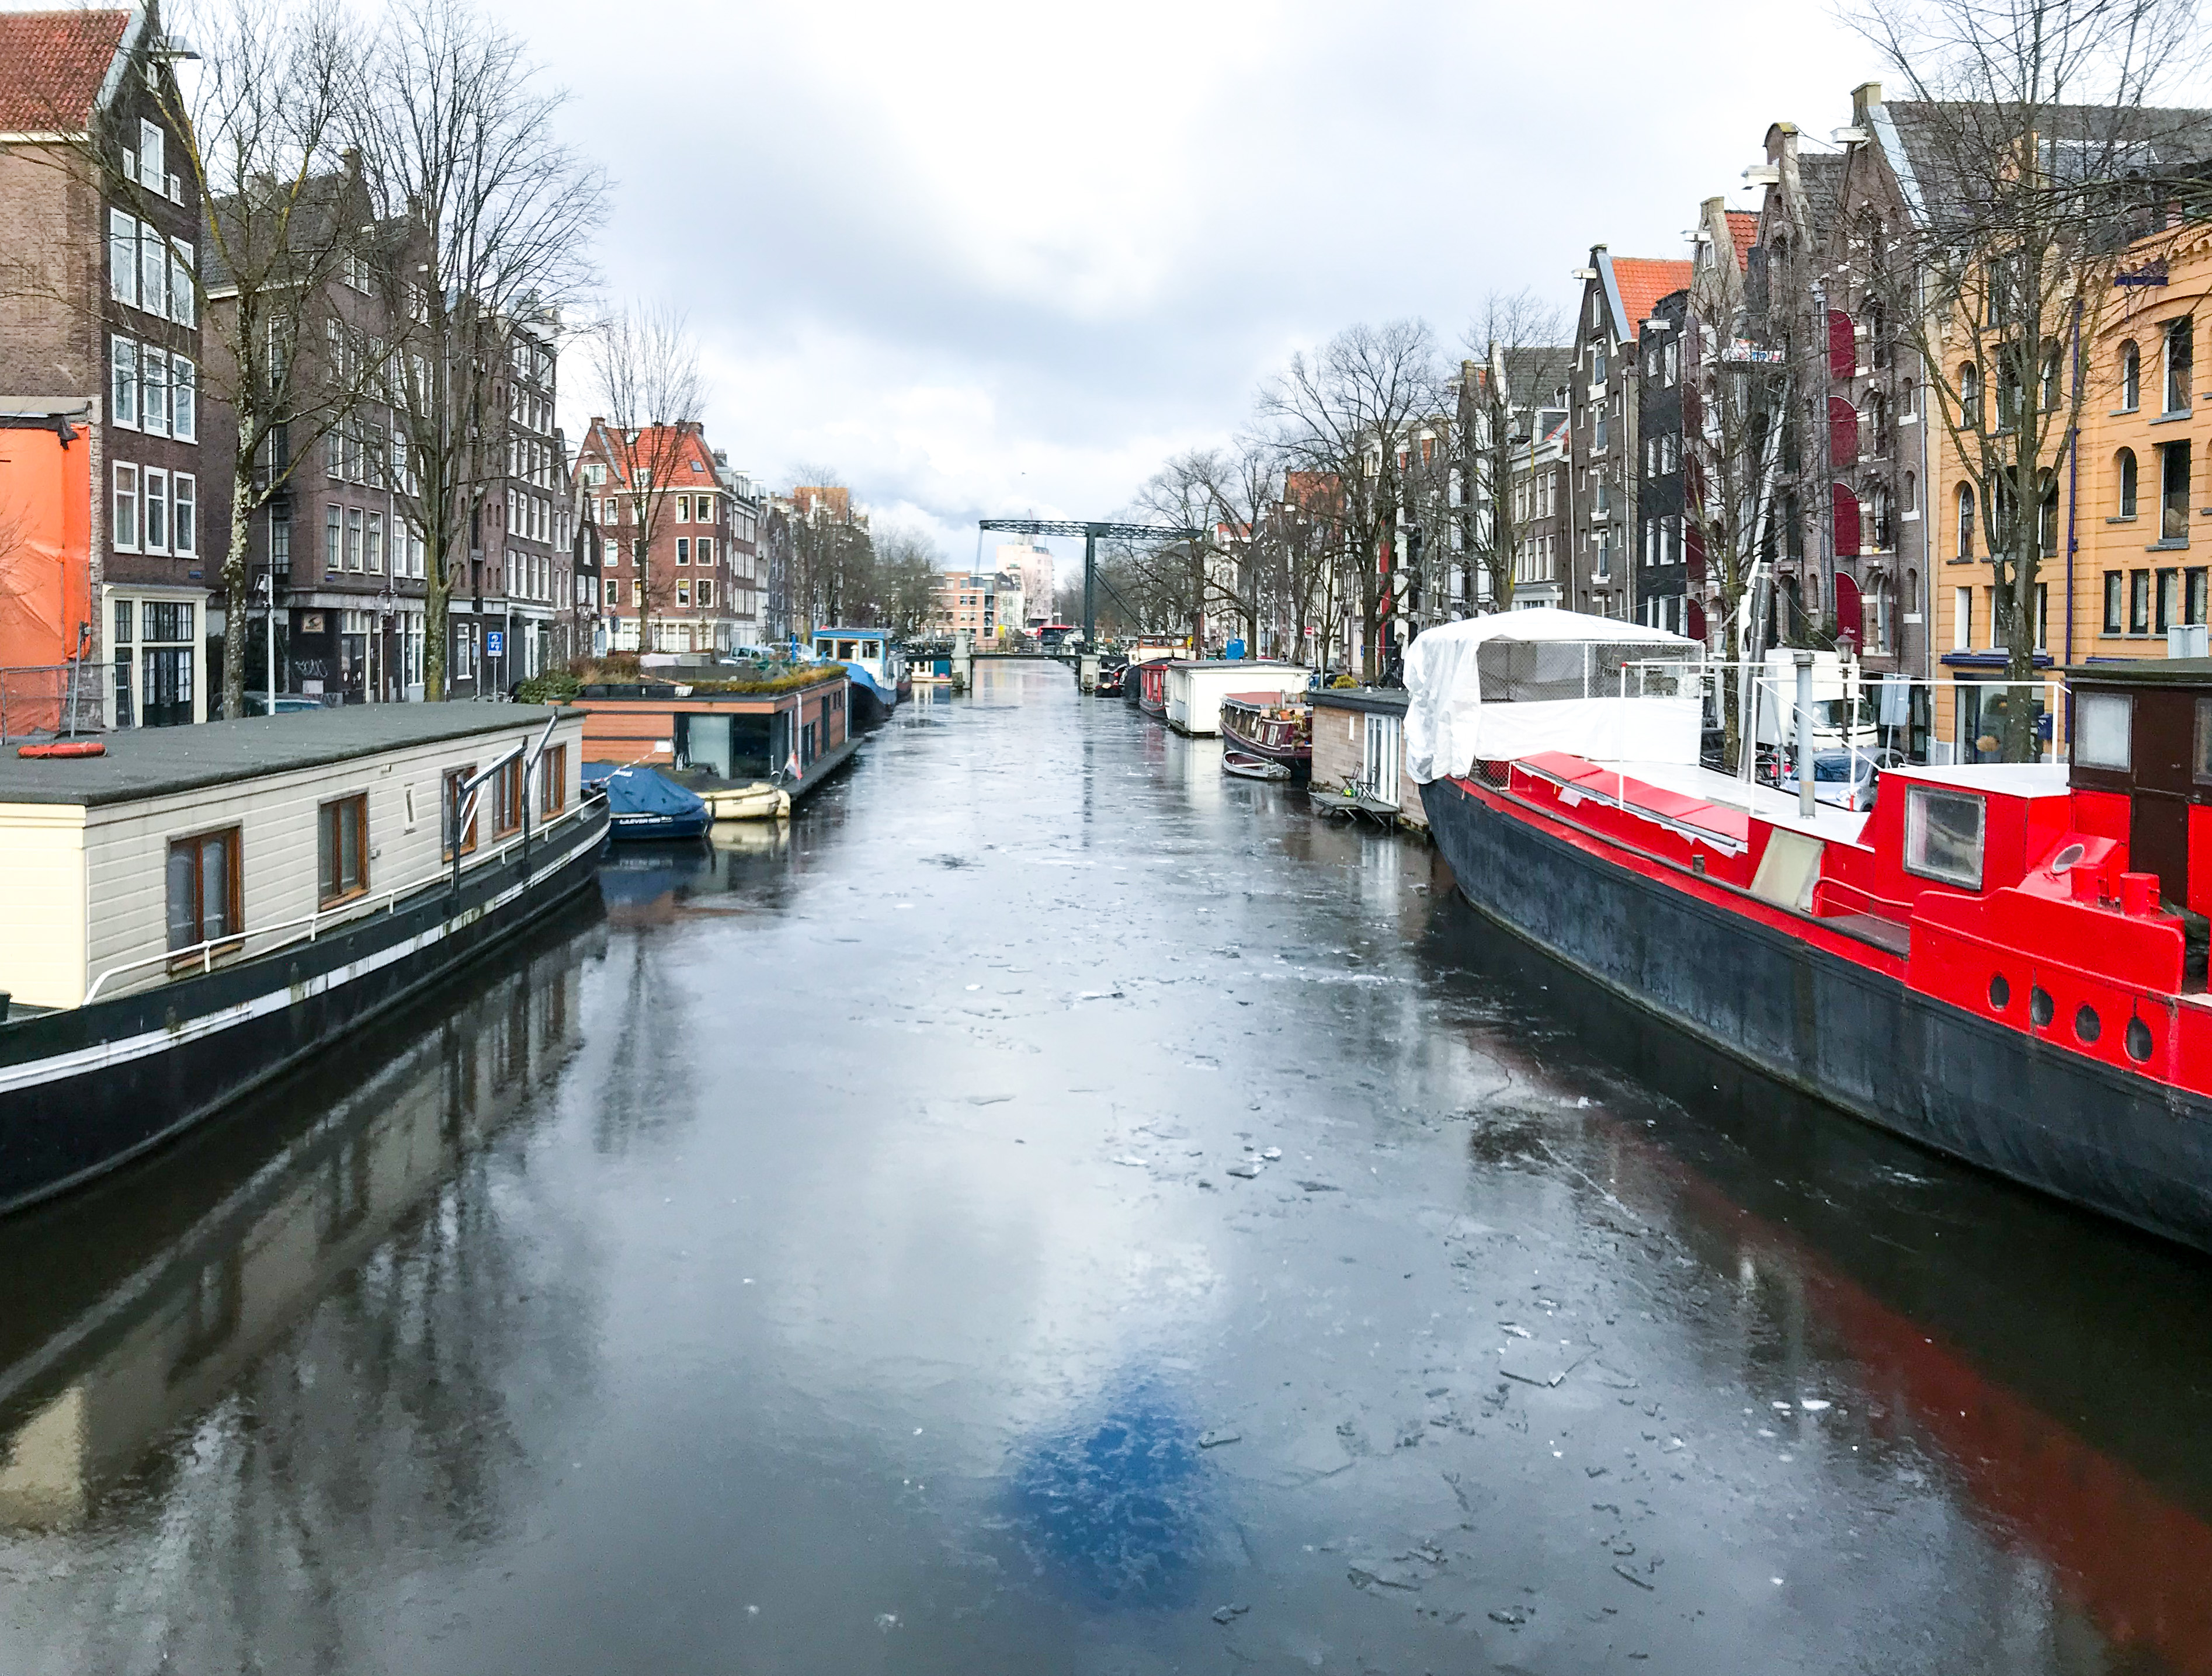 Get your skates out: There is ice on the canals of Amsterdam!